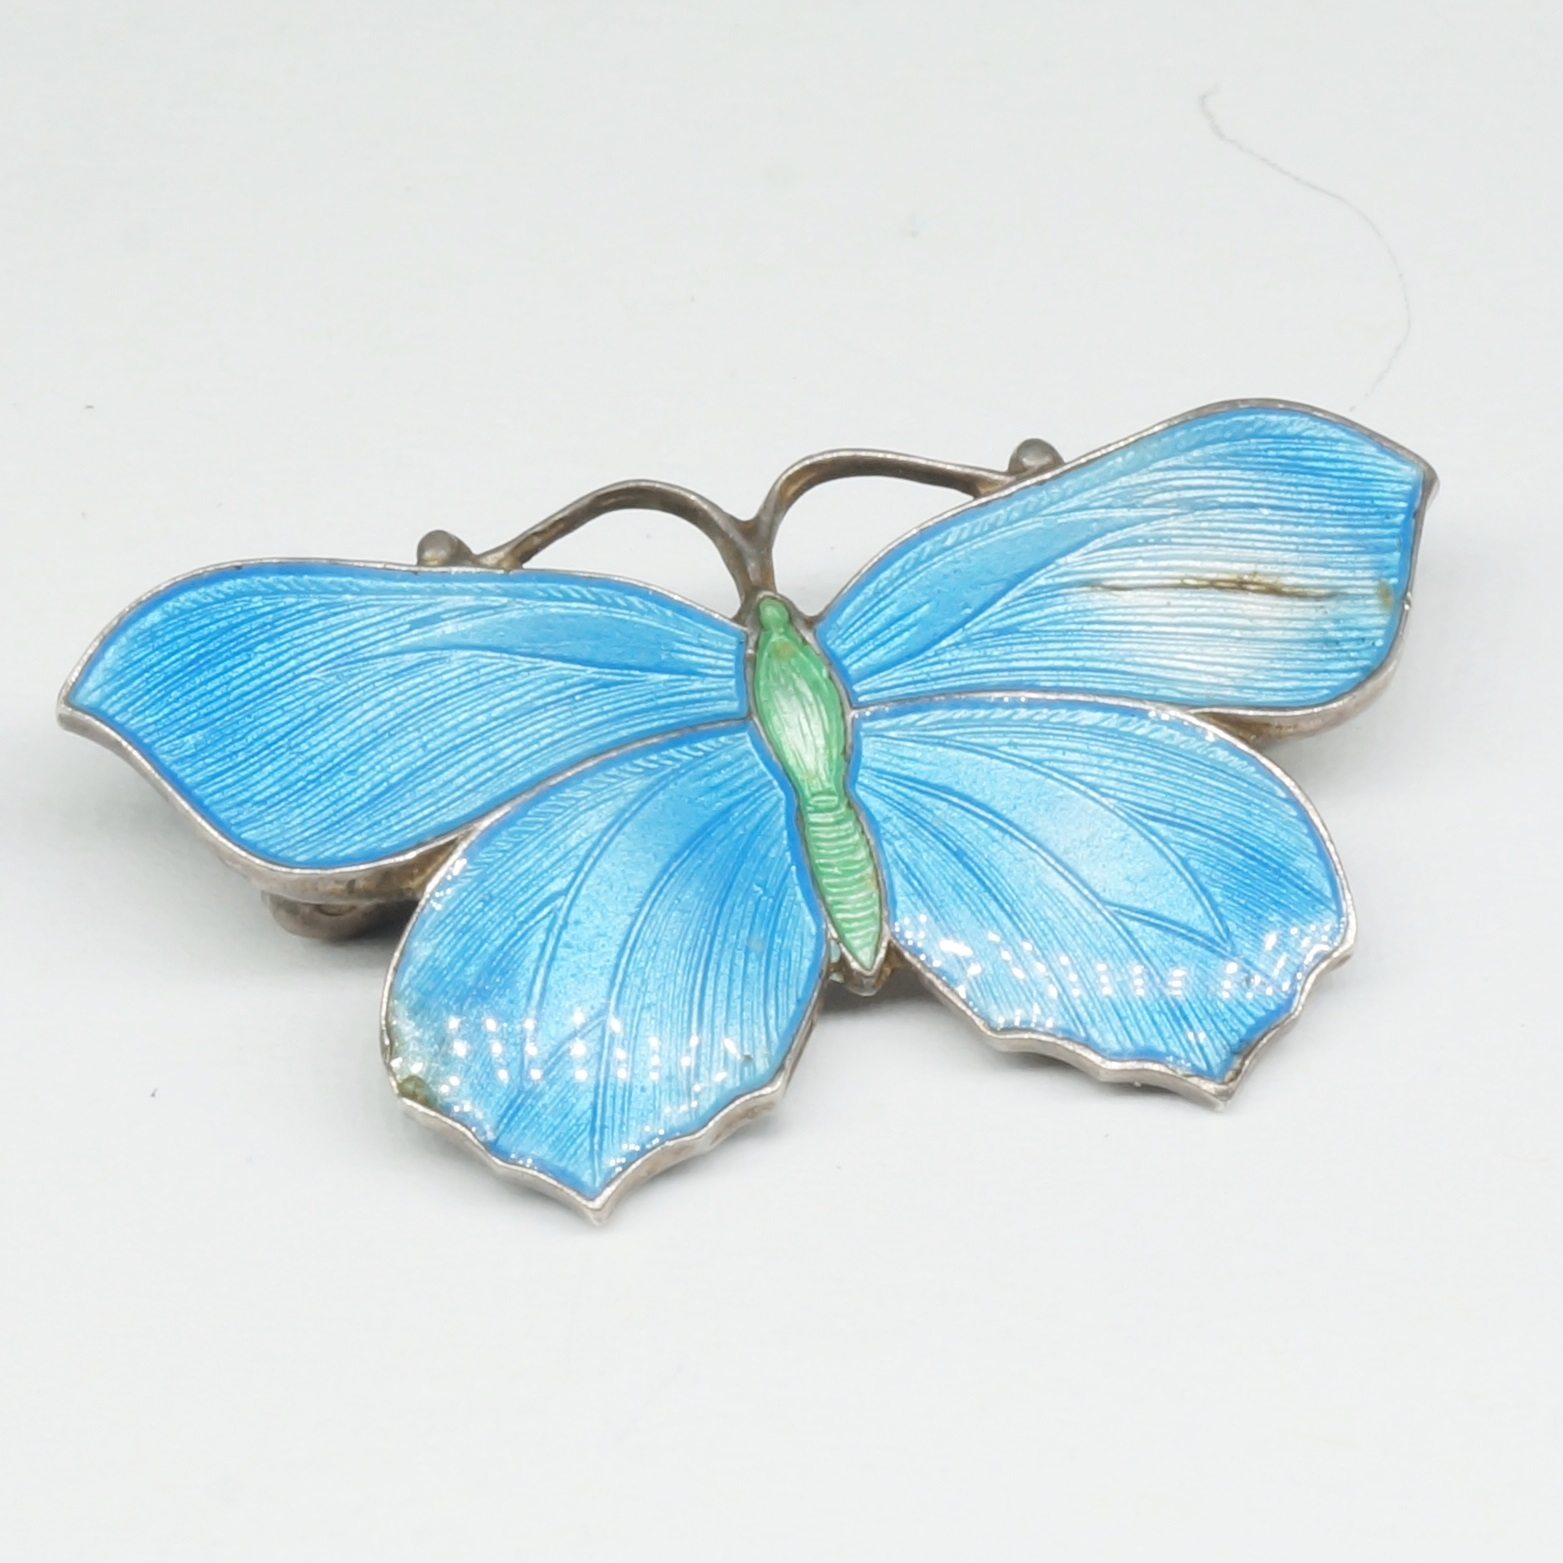 'Sterling Silver Enamelled Butterfly Brooch '